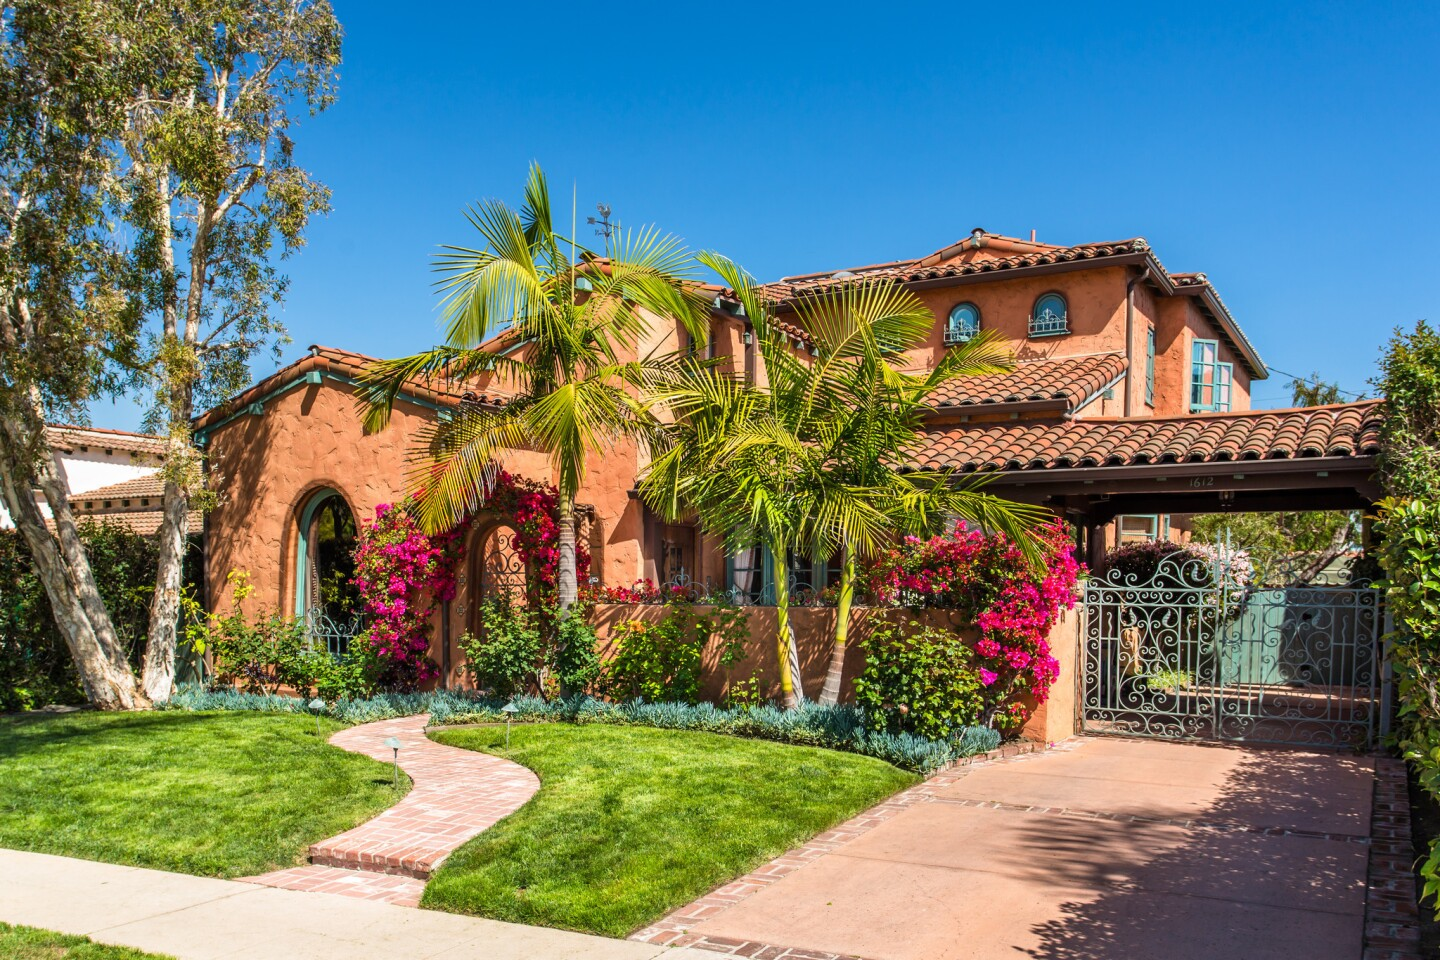 Home of the Day: Spanish style with set dressing